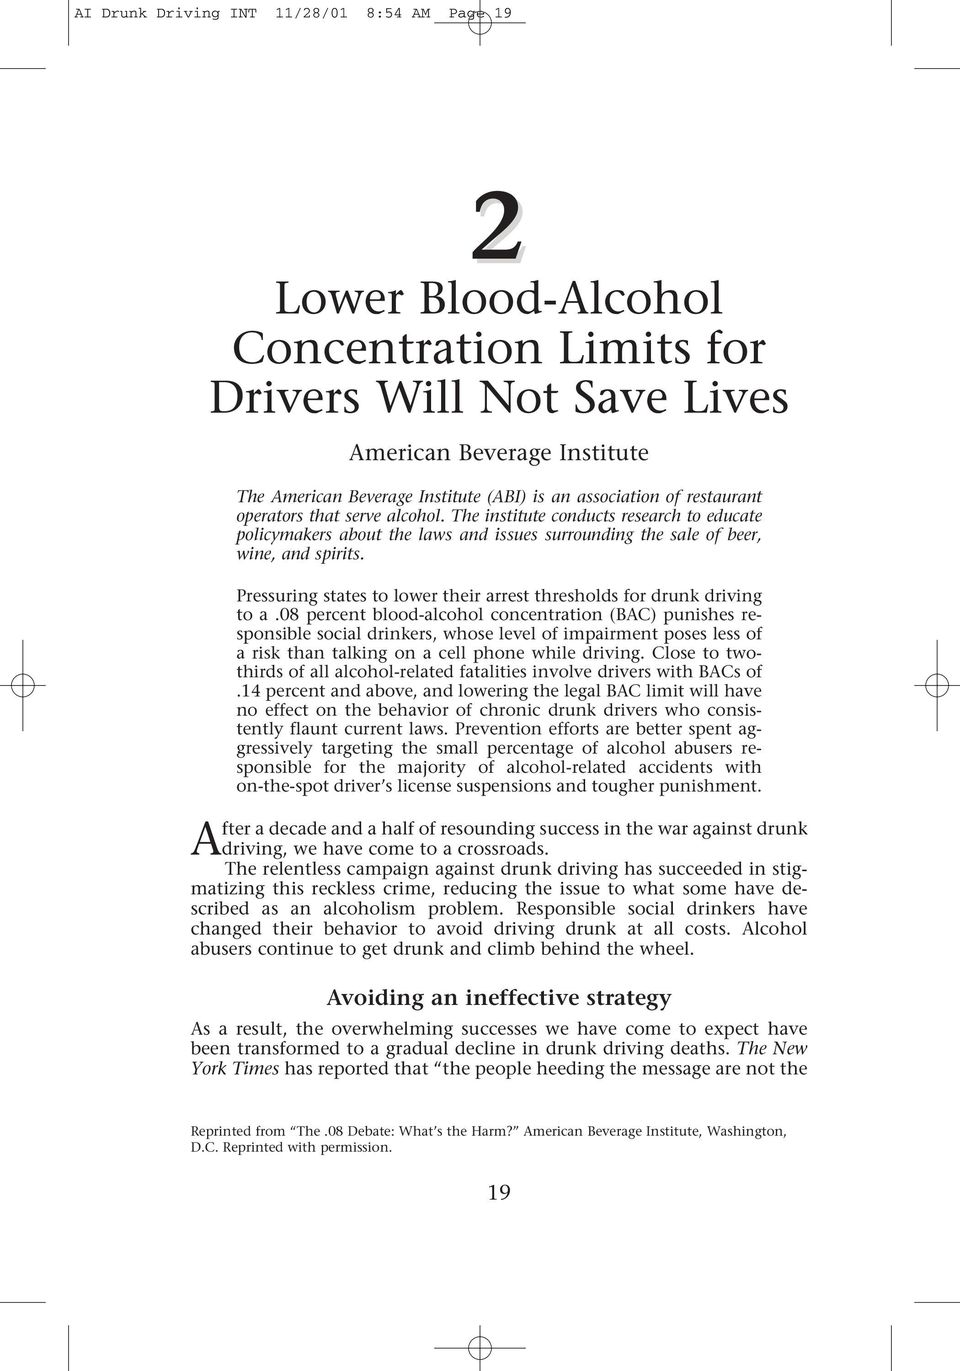 Pressuring states to lower their arrest thresholds for drunk driving to a.